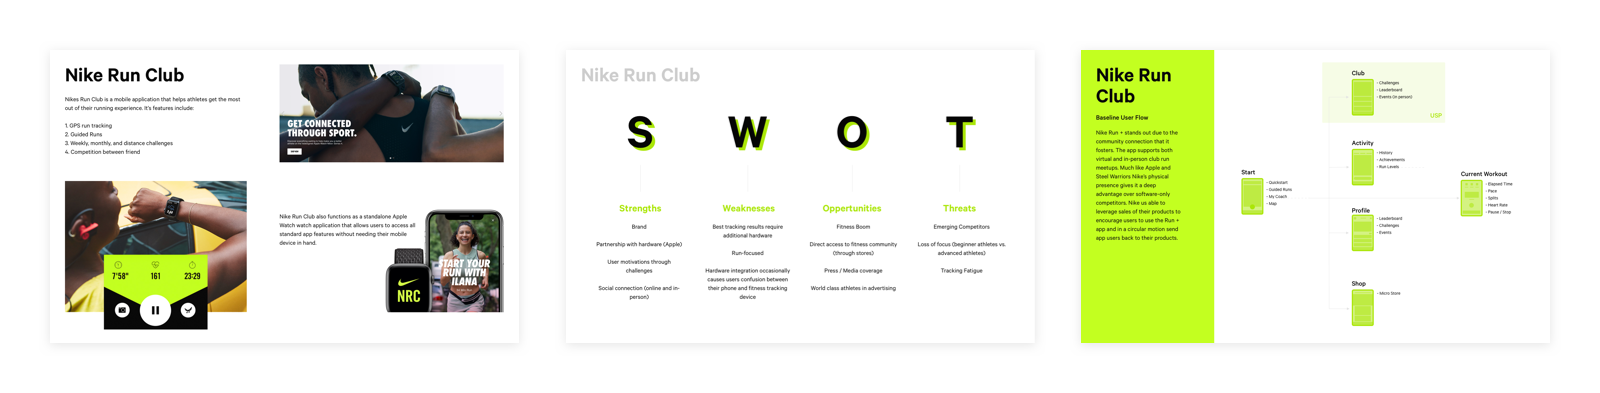 Presentation pages showcasing research outcomes from investigating the  Nike Run club app